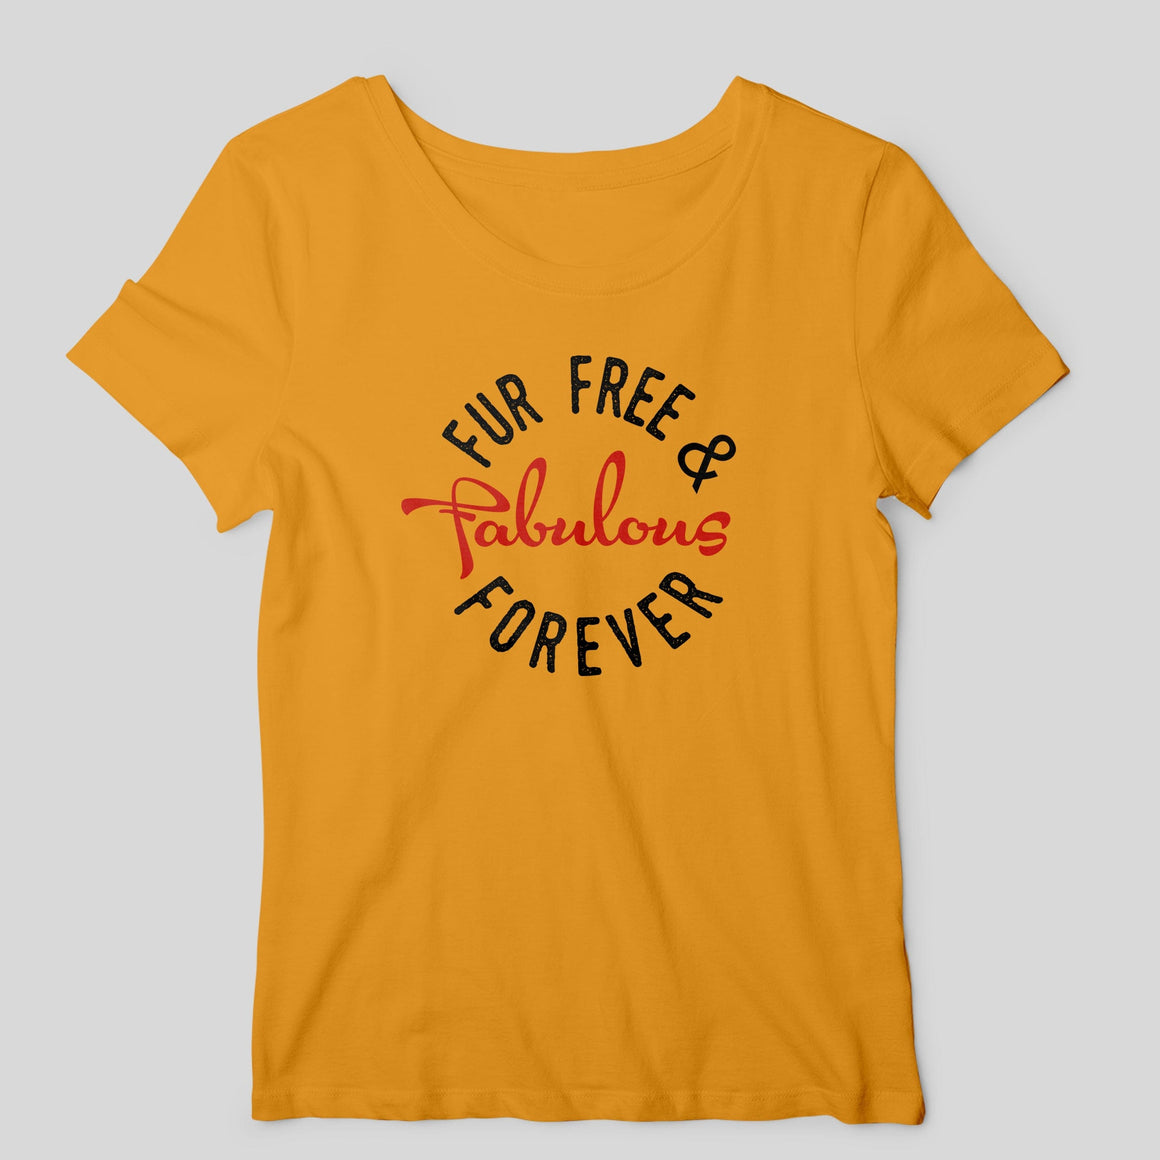 Fur Free & Fabulous Women's T-shirt T-shirt by DIRT & GLORY